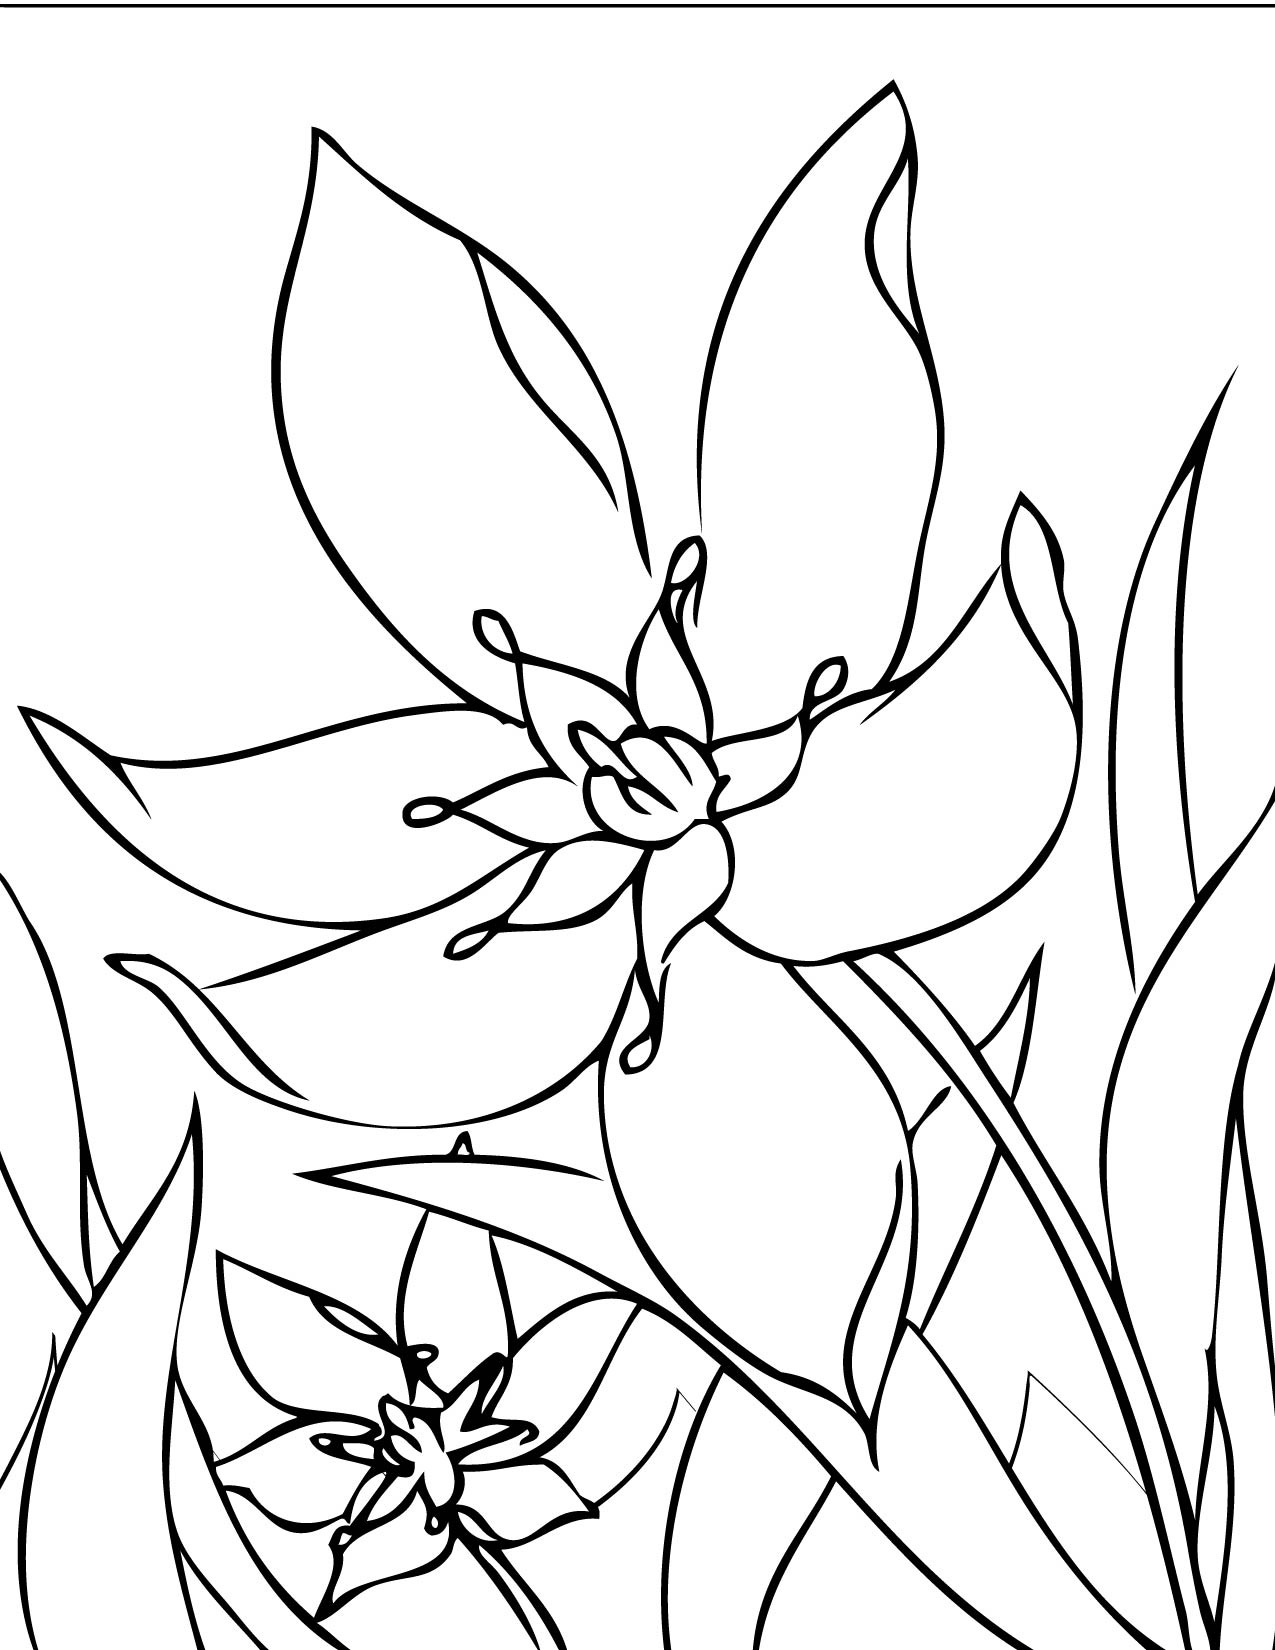 Free coloring pages spring flowers - Flowers Coloring Pages